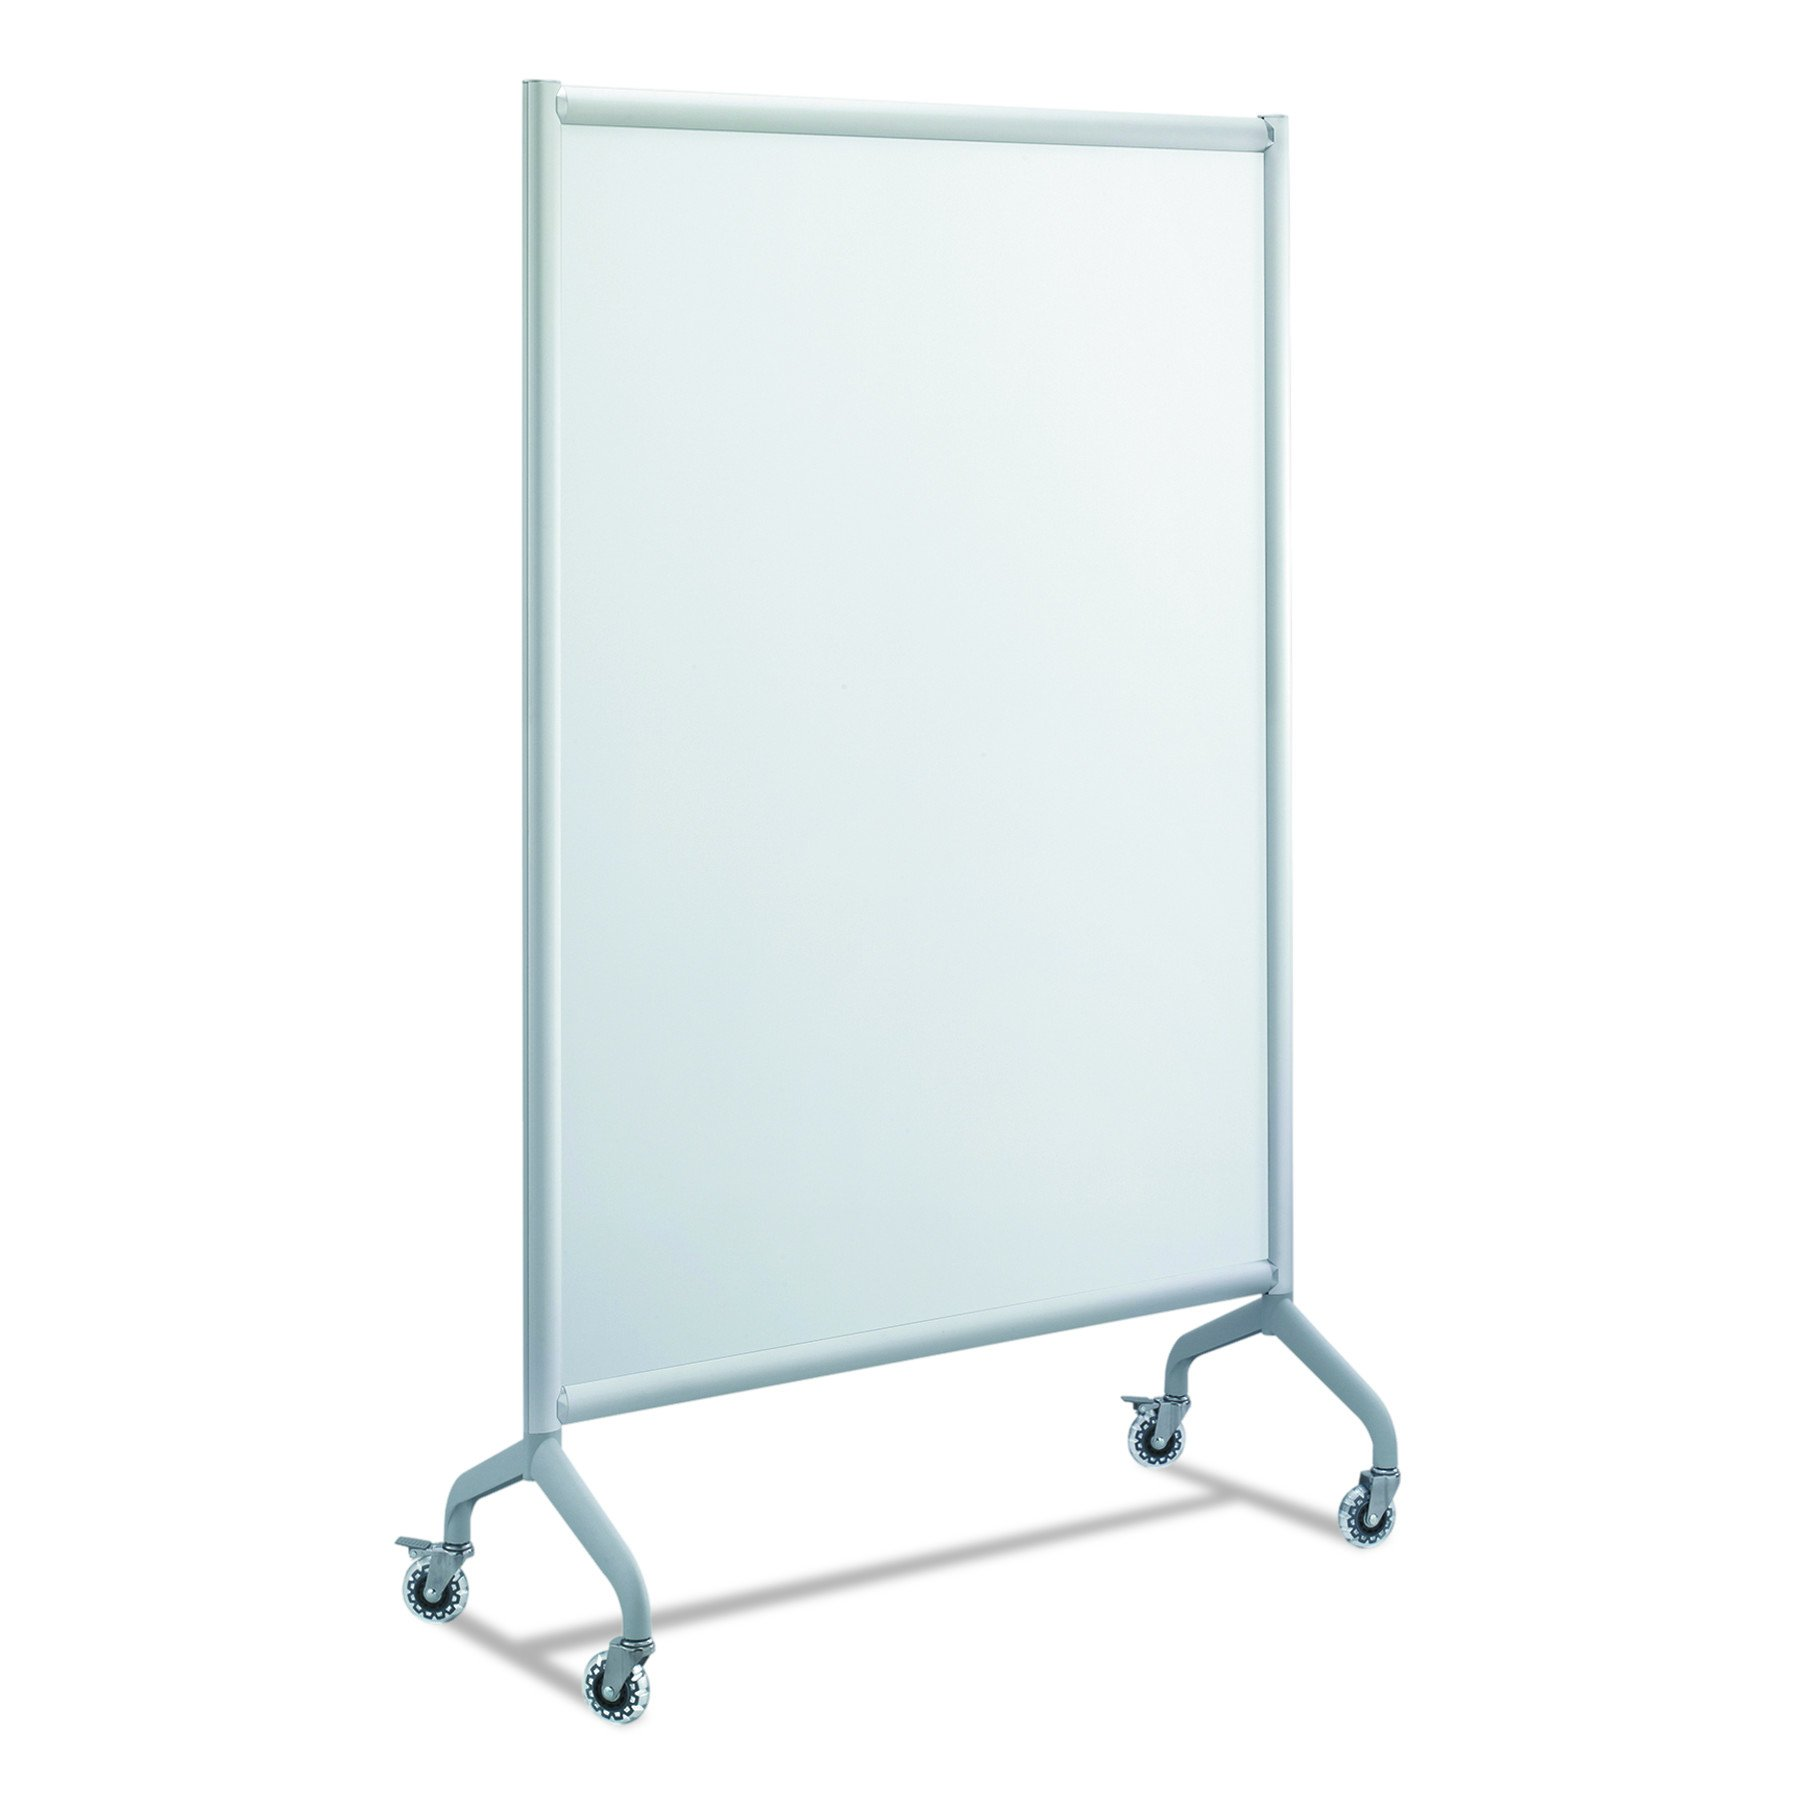 Safco Products 2017WBS Rumba Full Panel Collaboration Screen Whiteboard 42 x 66'', Gray Frame